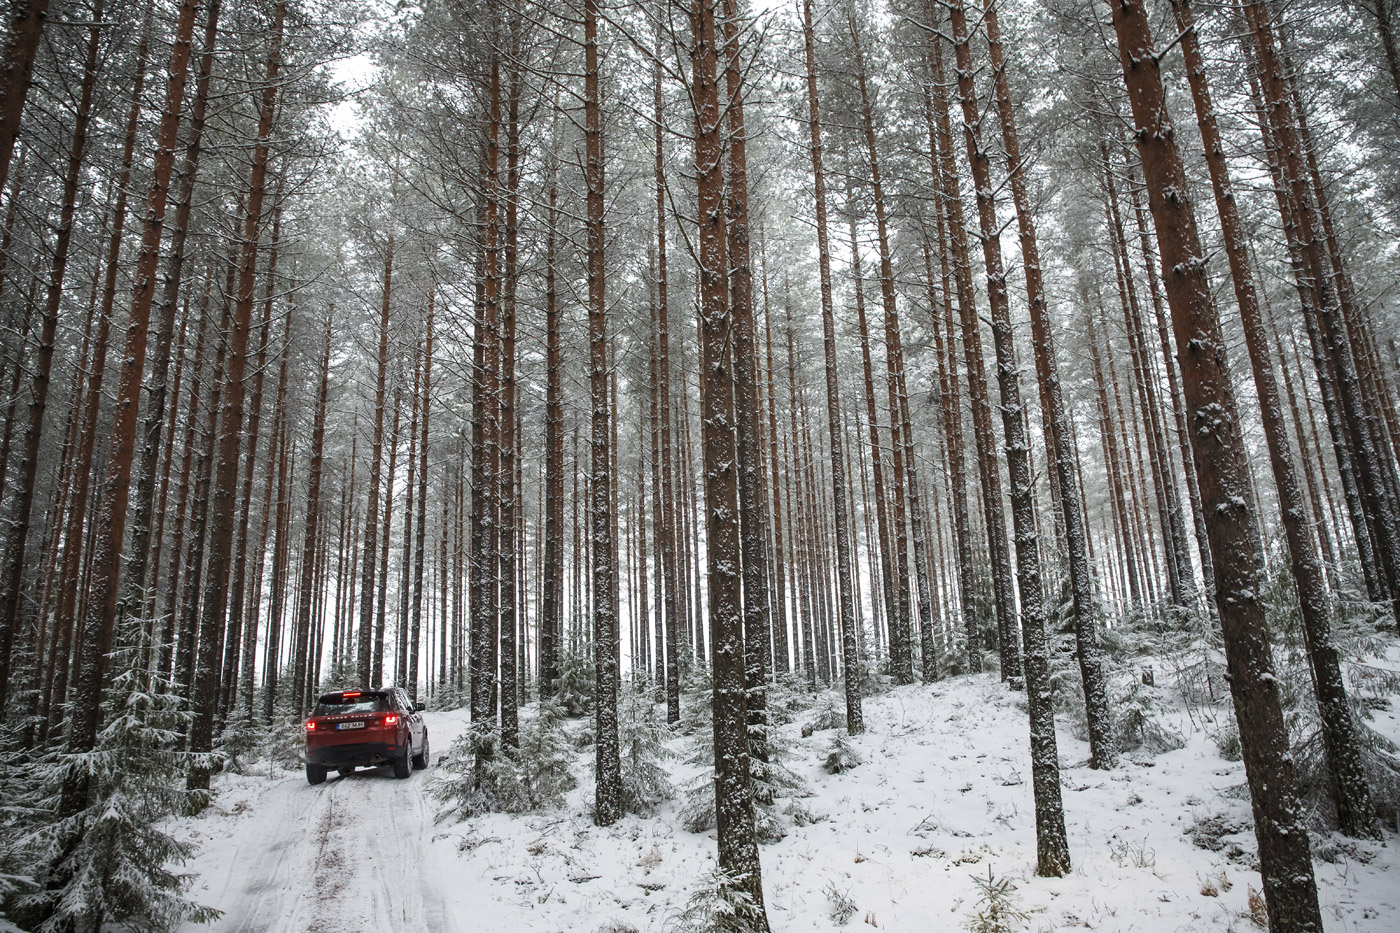 <p>Range Rover Sport makes its way through a snowy wood in Finland.</p>